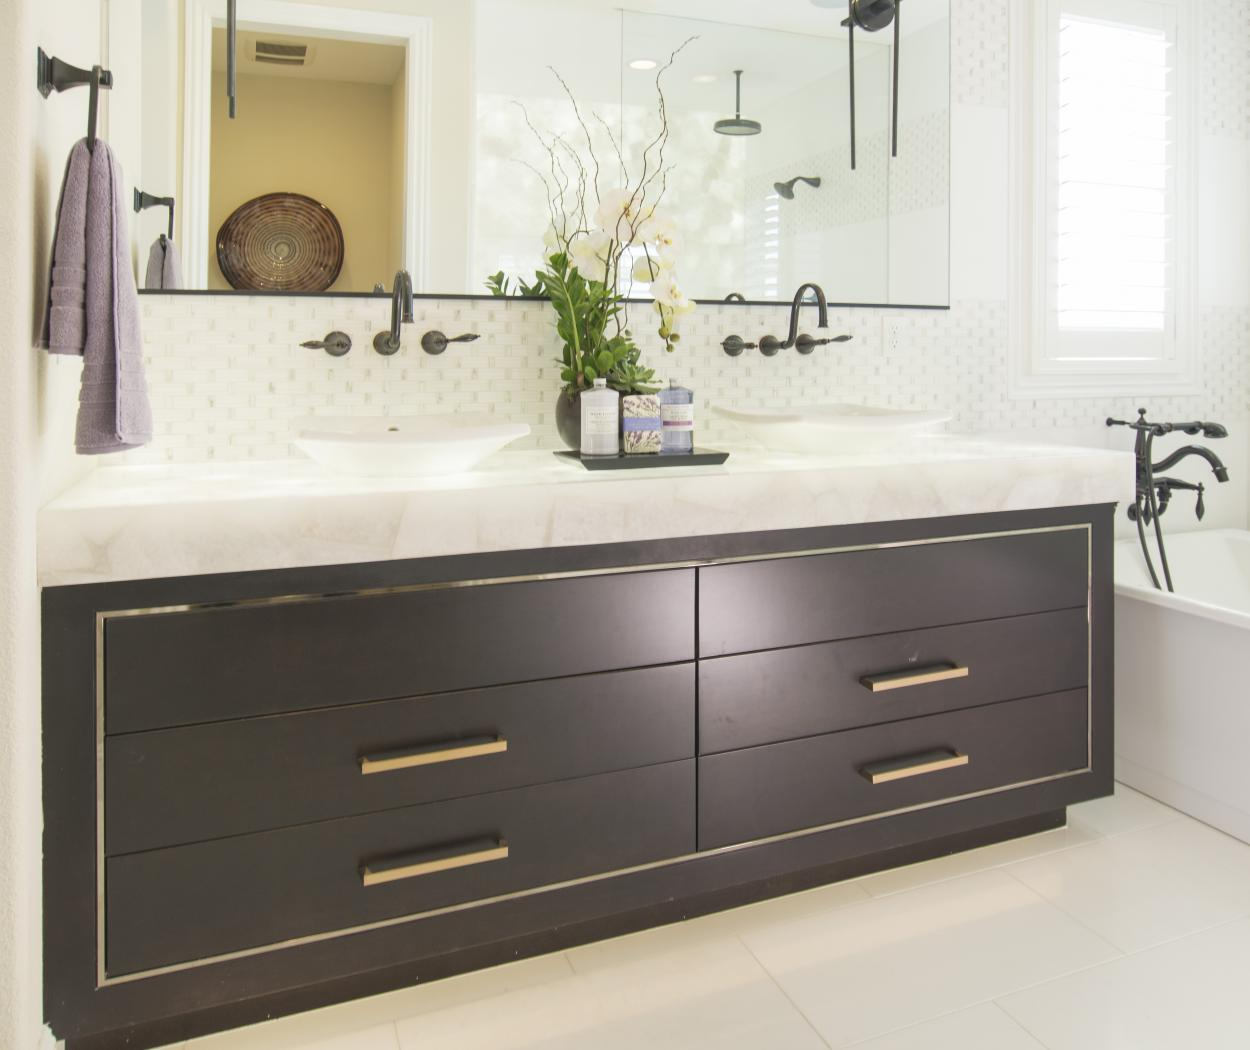 Beautiful Dark Espresso Bathroom Vanity with Double Sink Bowls, White Mixed Counter Top and Gold Pulls